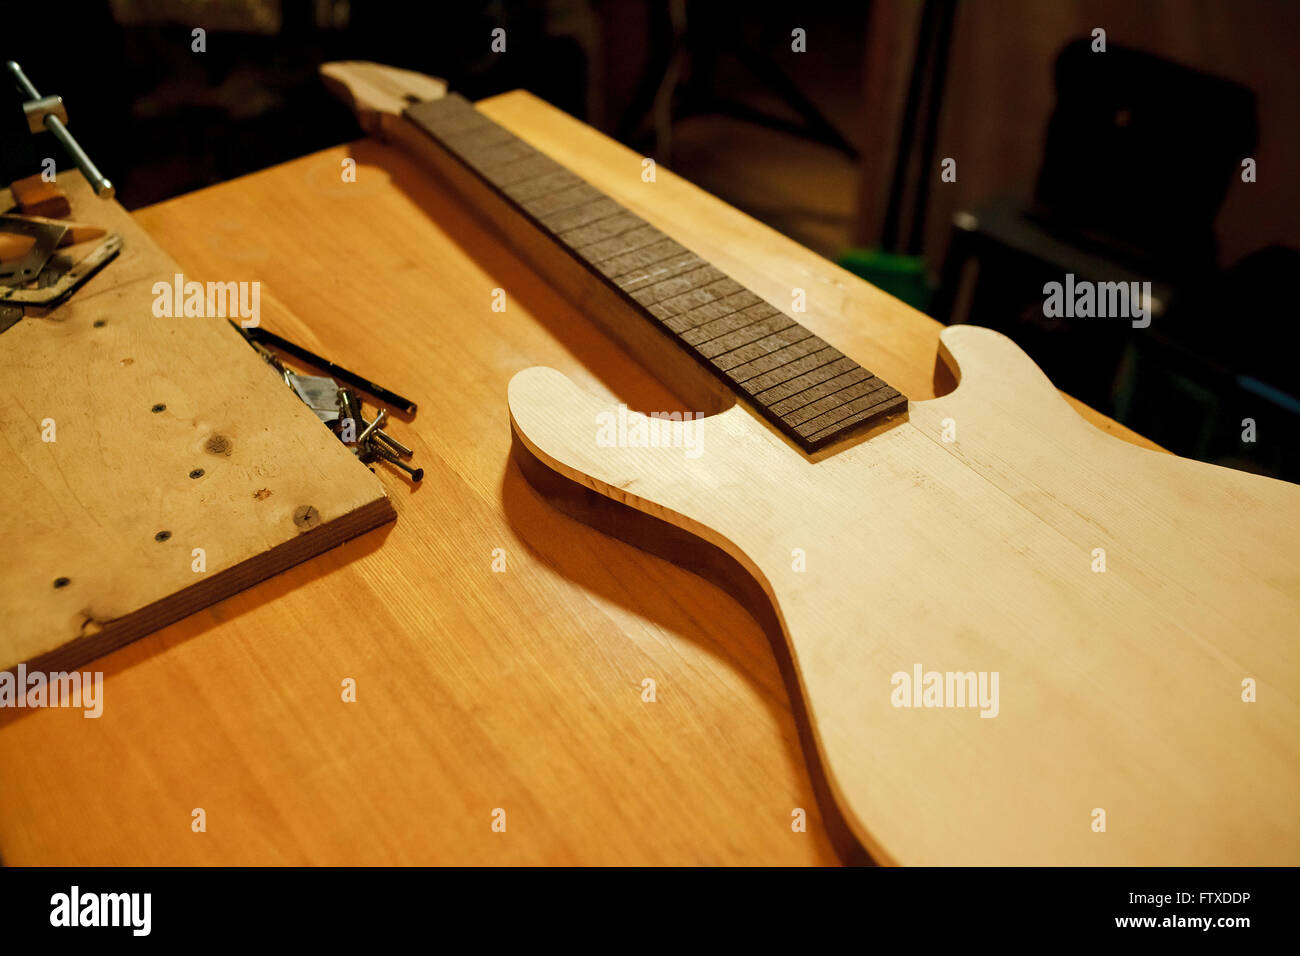 Billet of wood for bass guitar. Manufacture and repair musical instruments. - Stock Image